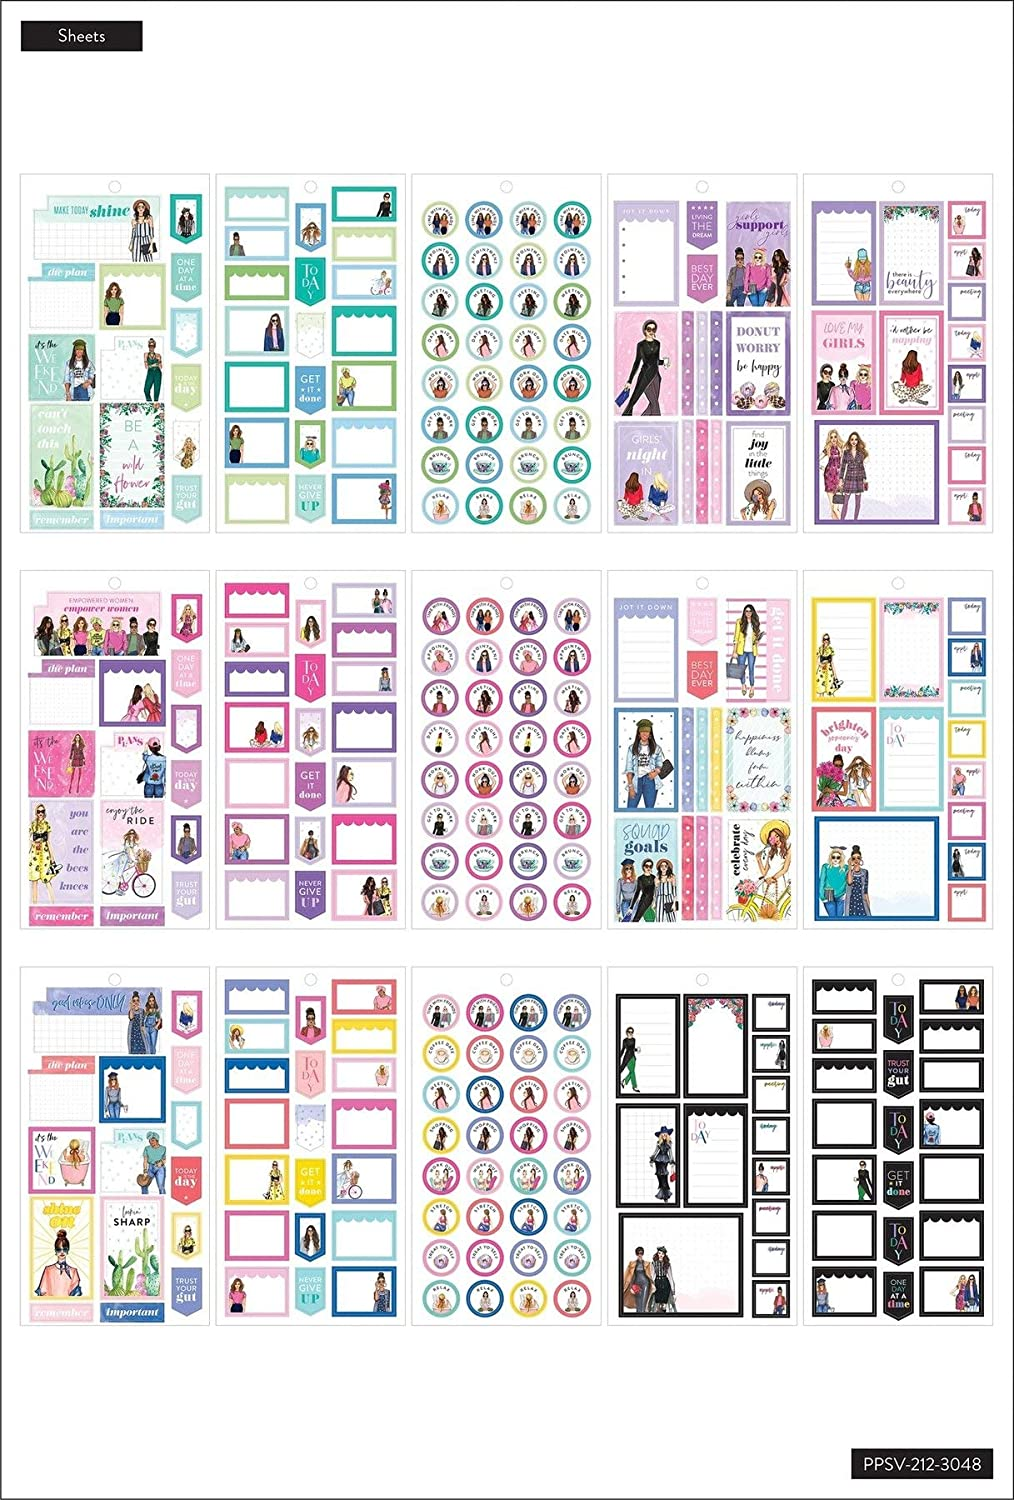 Rongrong Collection 570 Stickers Multicolor Everyday Theme Scrapbooks /& Albums Great for Journals Scrapbooking Supplies The Happy Planner Value Pack Sticker Sheets